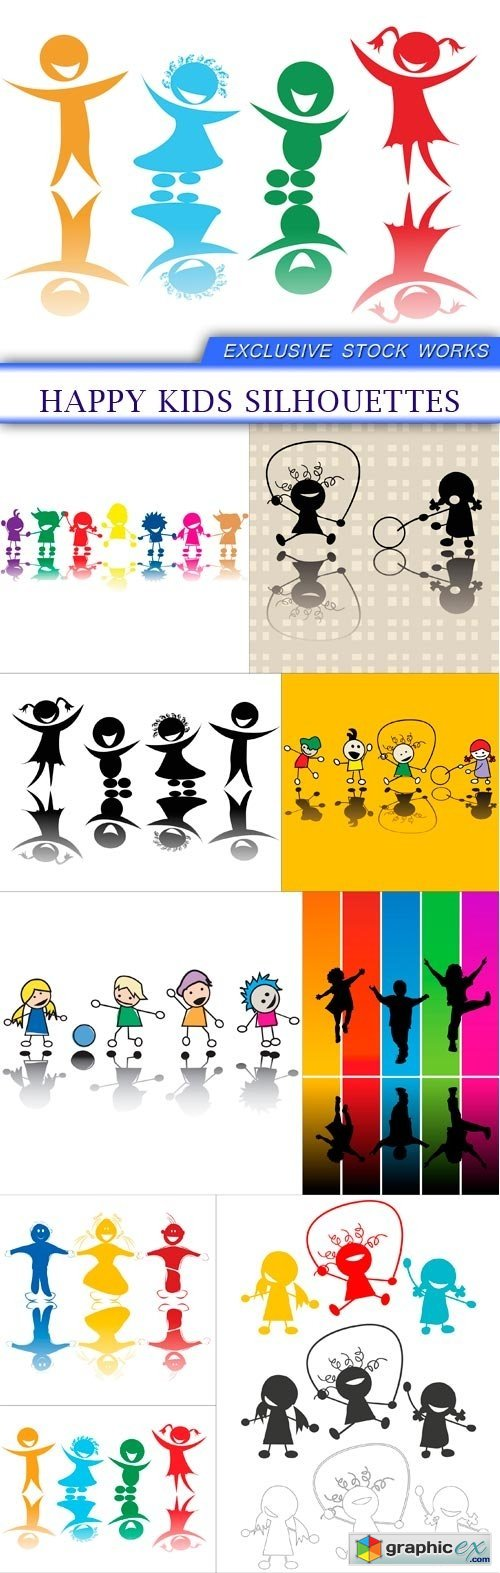 Happy kids silhouettes 9X EPS